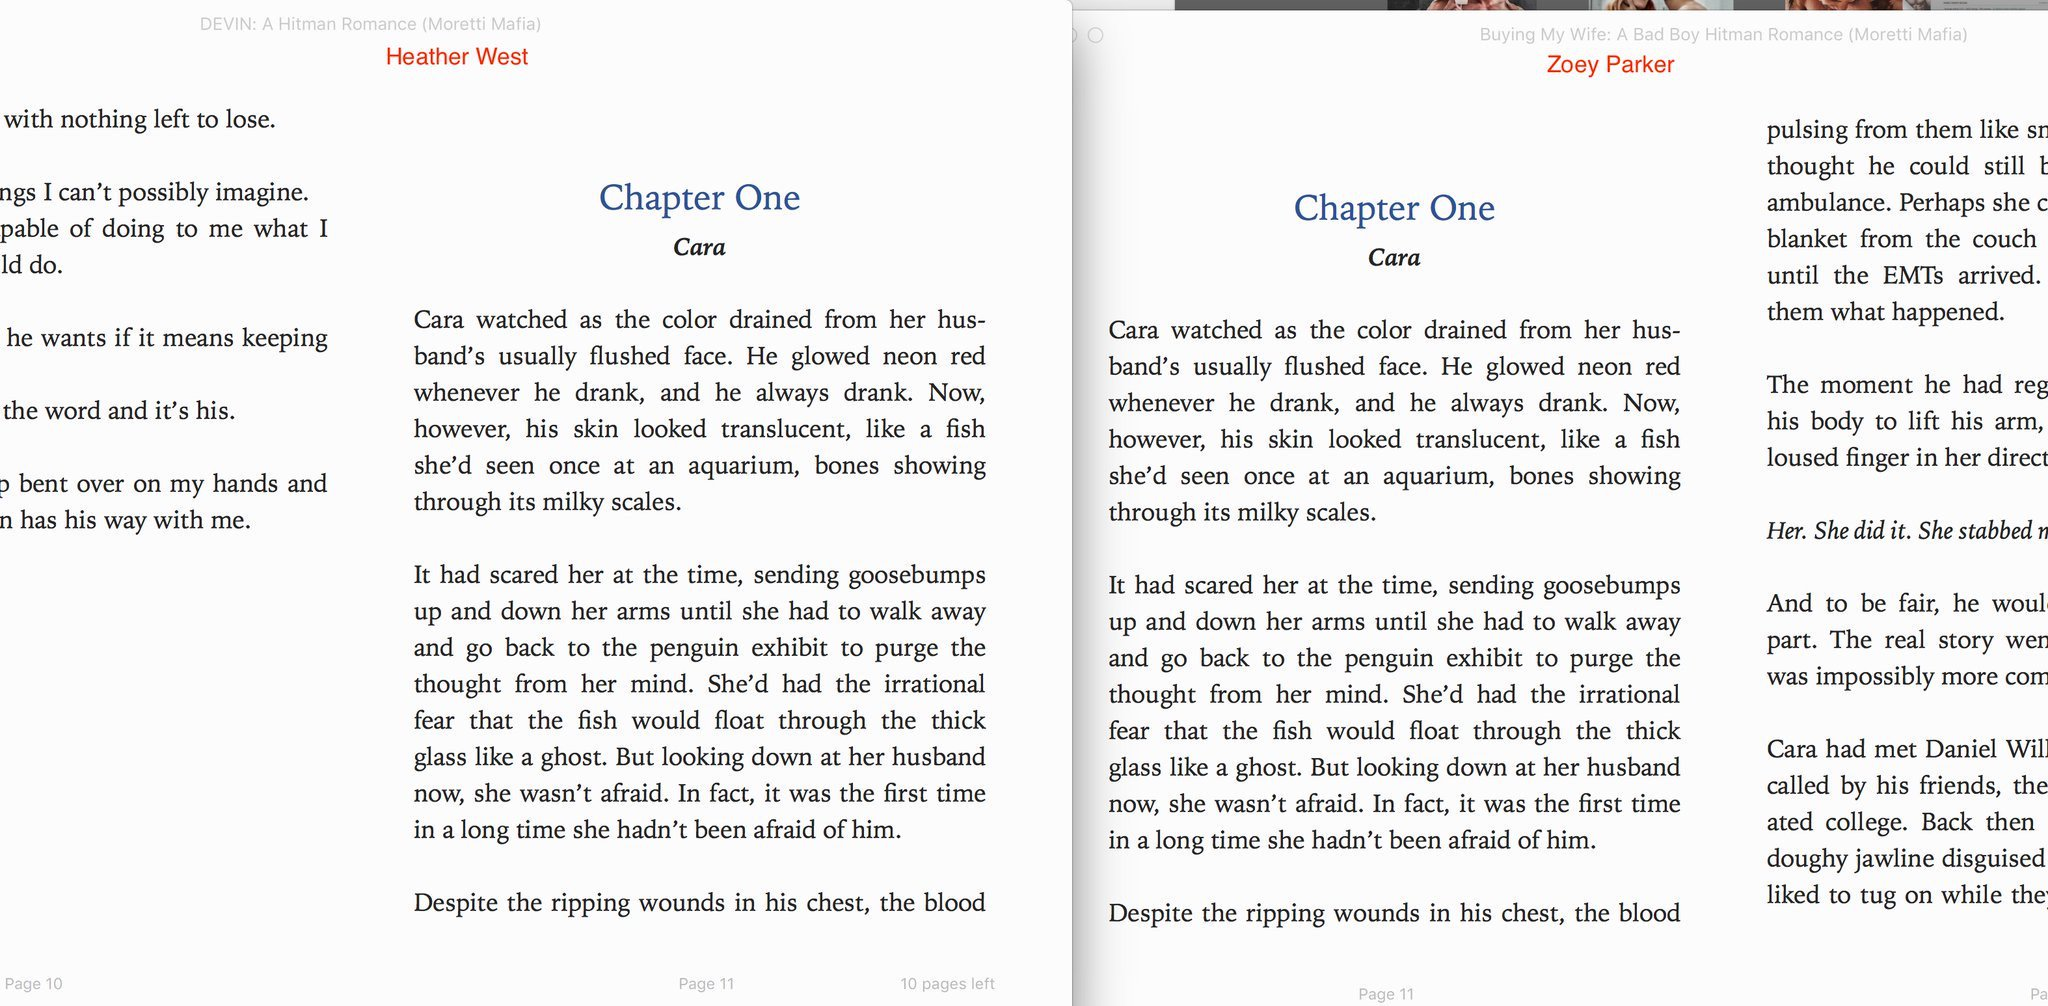 Heather West and Zoey Parker books side by side comparisons - books identical